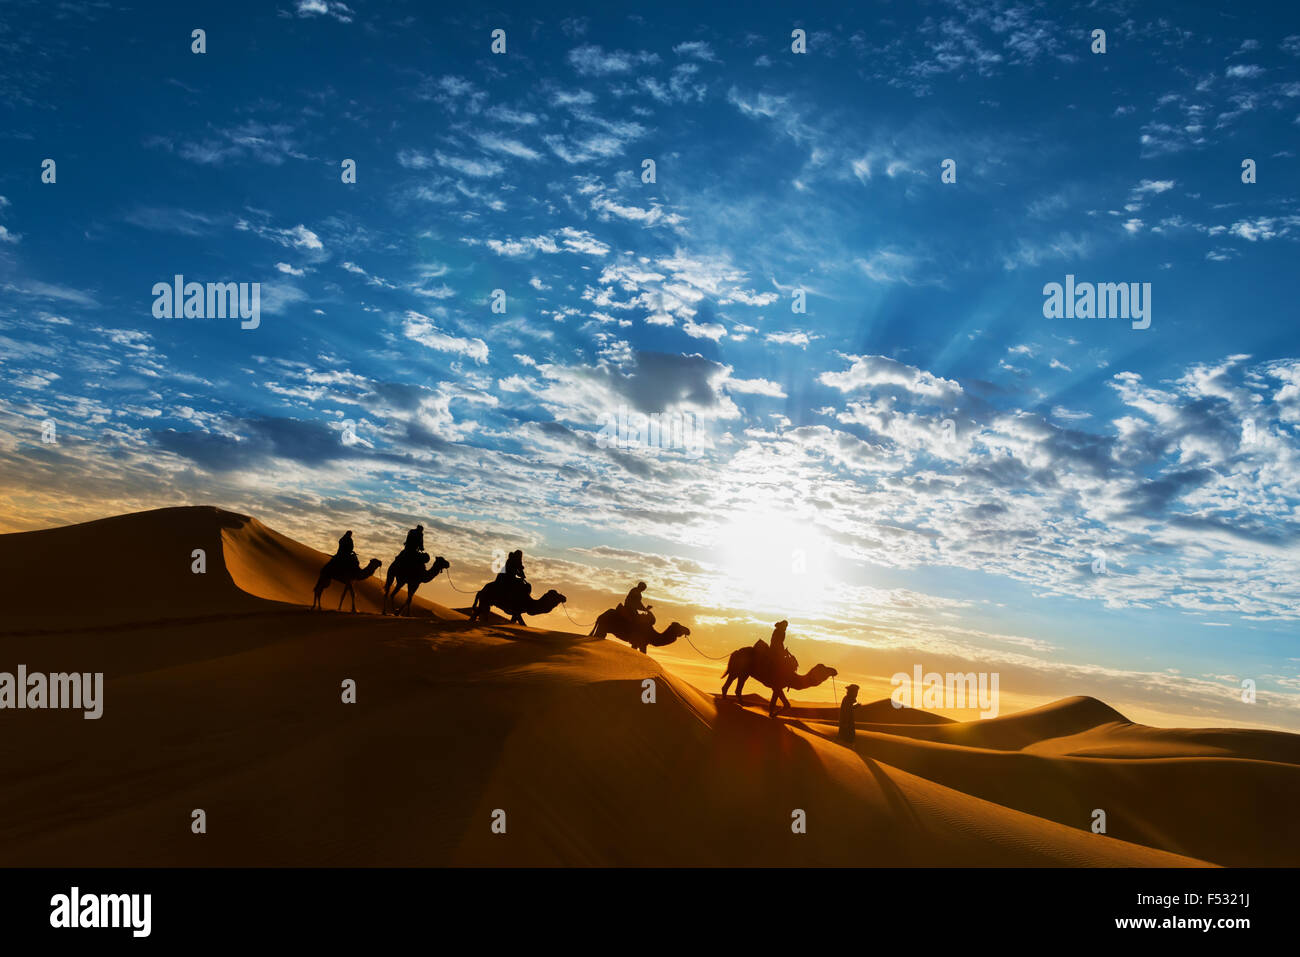 Caravan in the desert during sunrise against a beautiful cloudy sky, Erg Chebbi, Merzouga, Morocco. - Stock Image